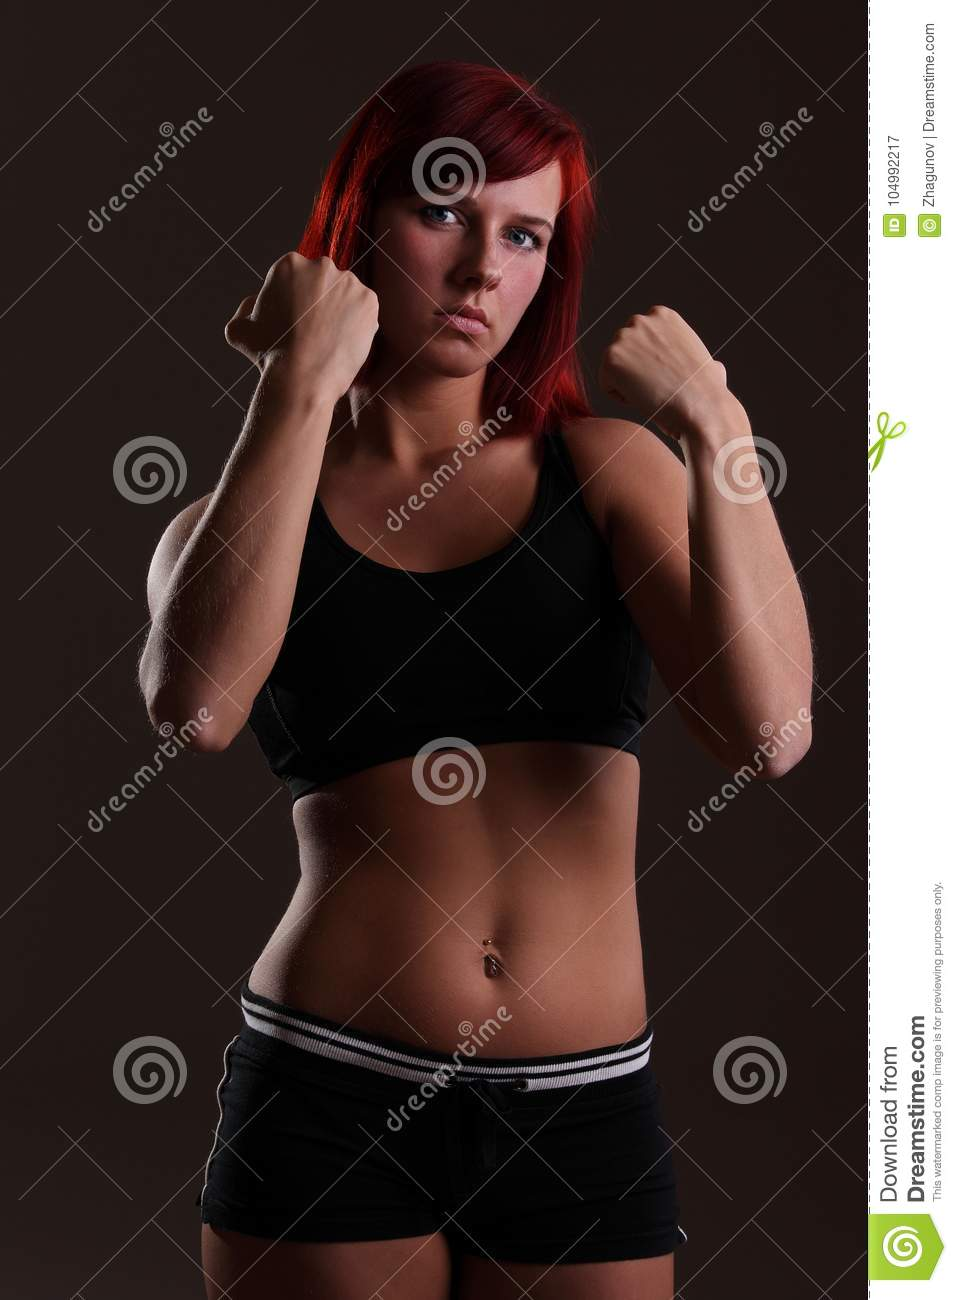 Young strong woman on a dark background